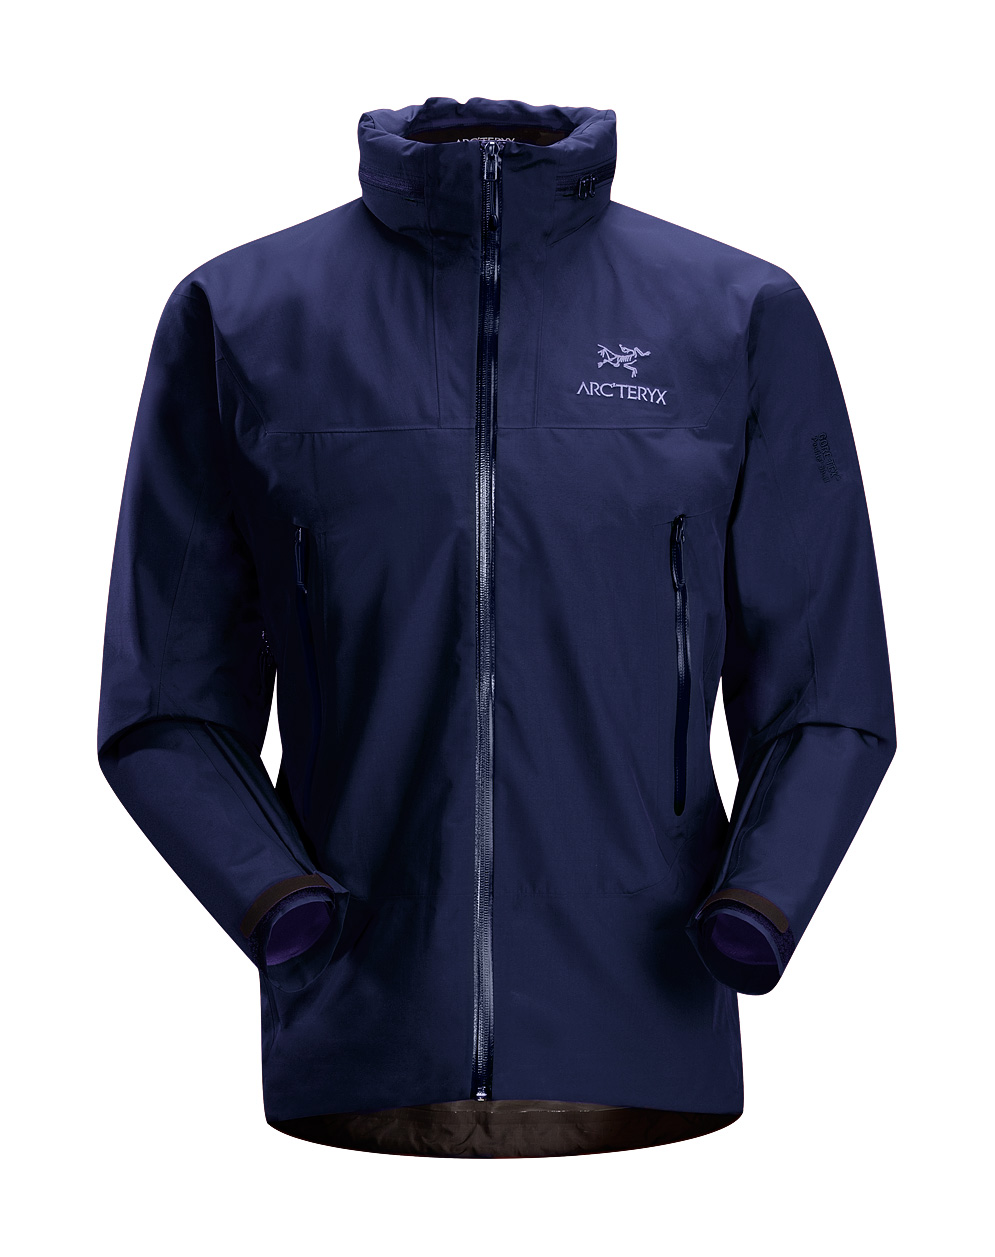 Arcteryx Jackets Men Olympus Blue Theta SL Hybrid Jacket - New